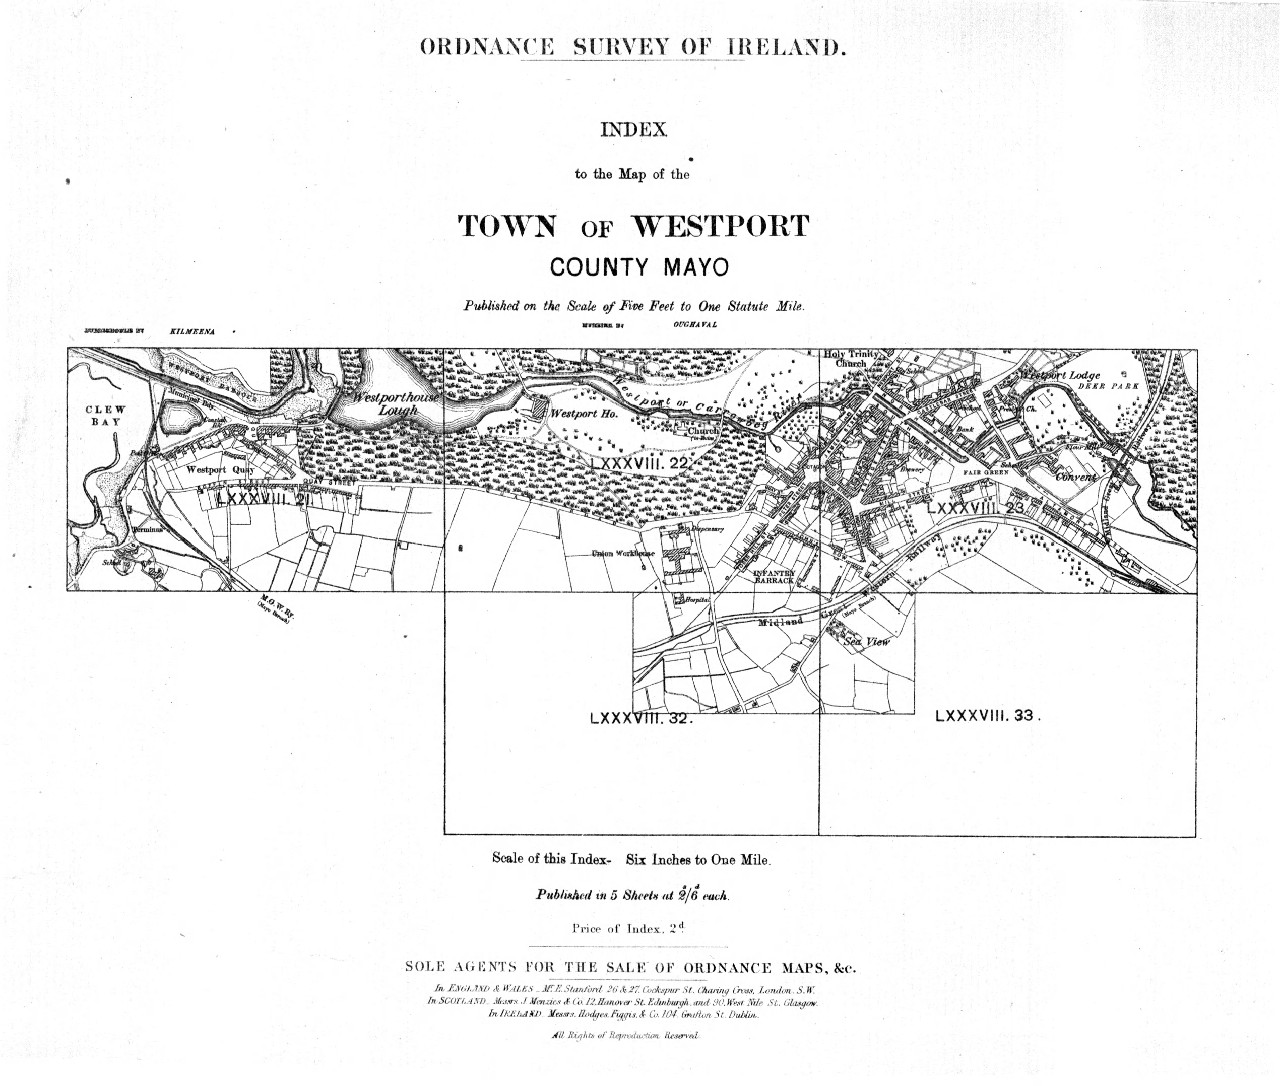 Ordnance Survey Of Ireland Index To The Map Of The Town Of Westport